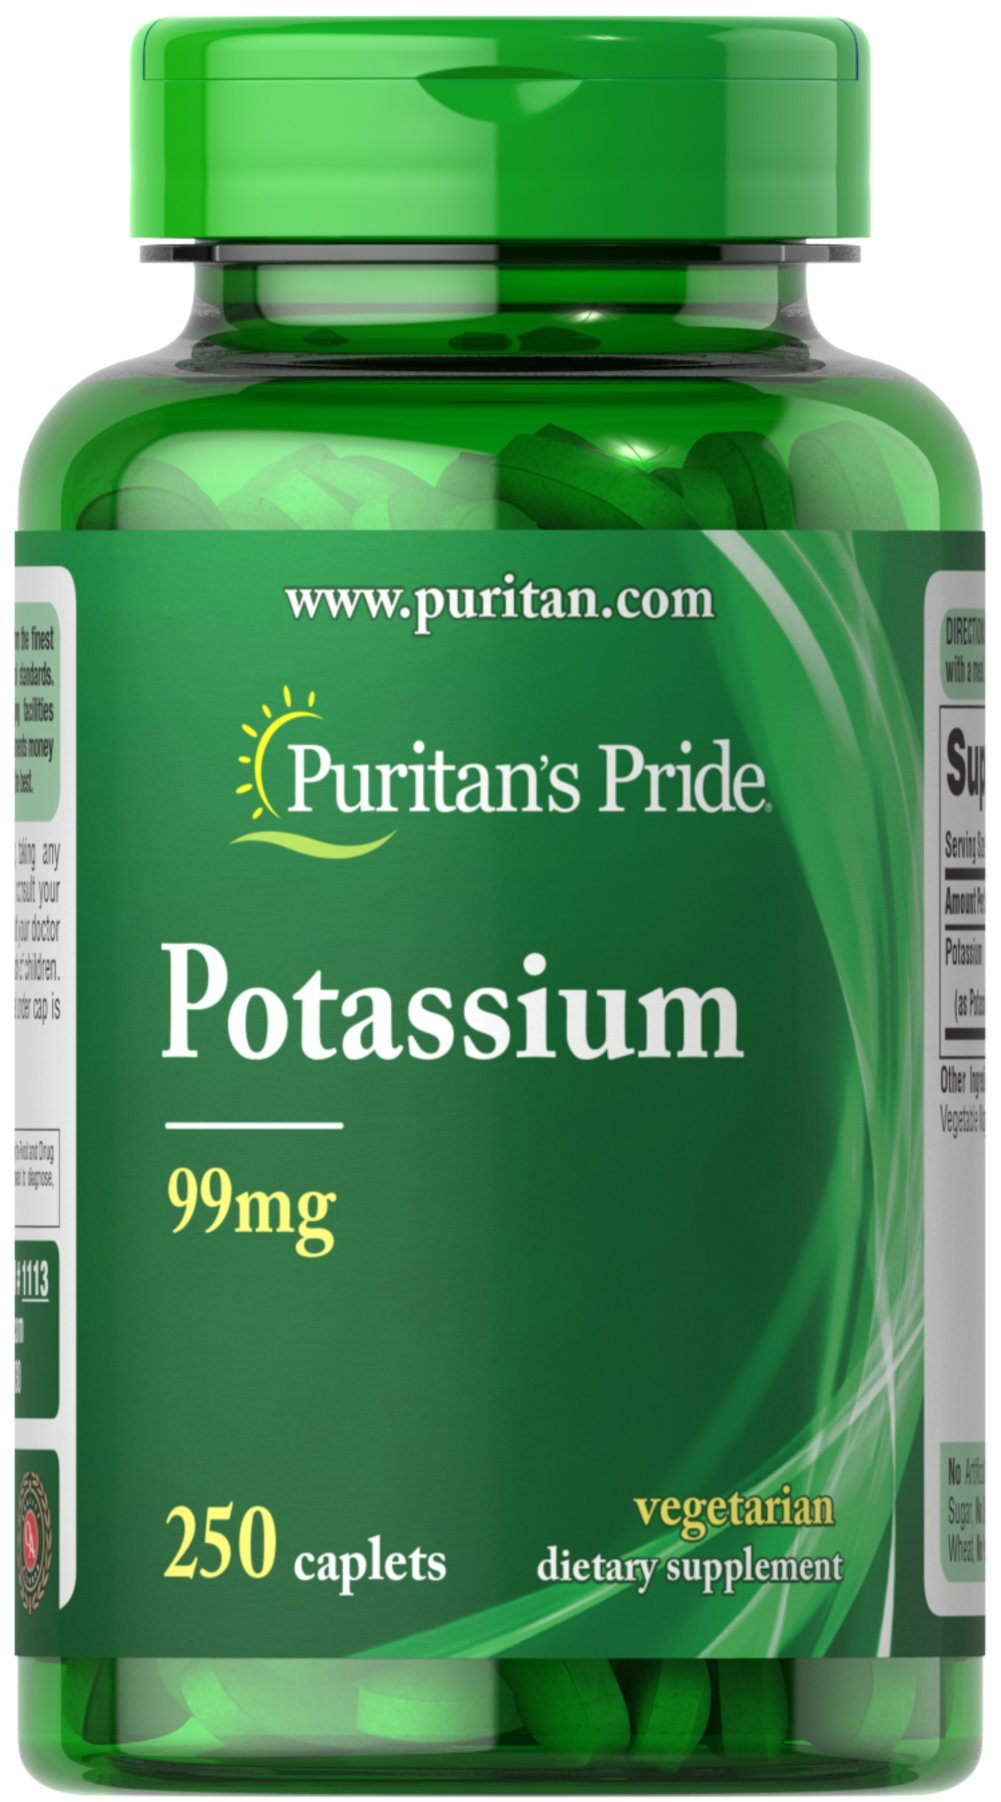 Potassium 99 mg <p>Works with sodium to regulate the body's water balance. </p><p>Helps attract nutrients into cells and required for carbohydrate and protein metabolism. </p><p></p> 250 Caplets 99 mg $9.73